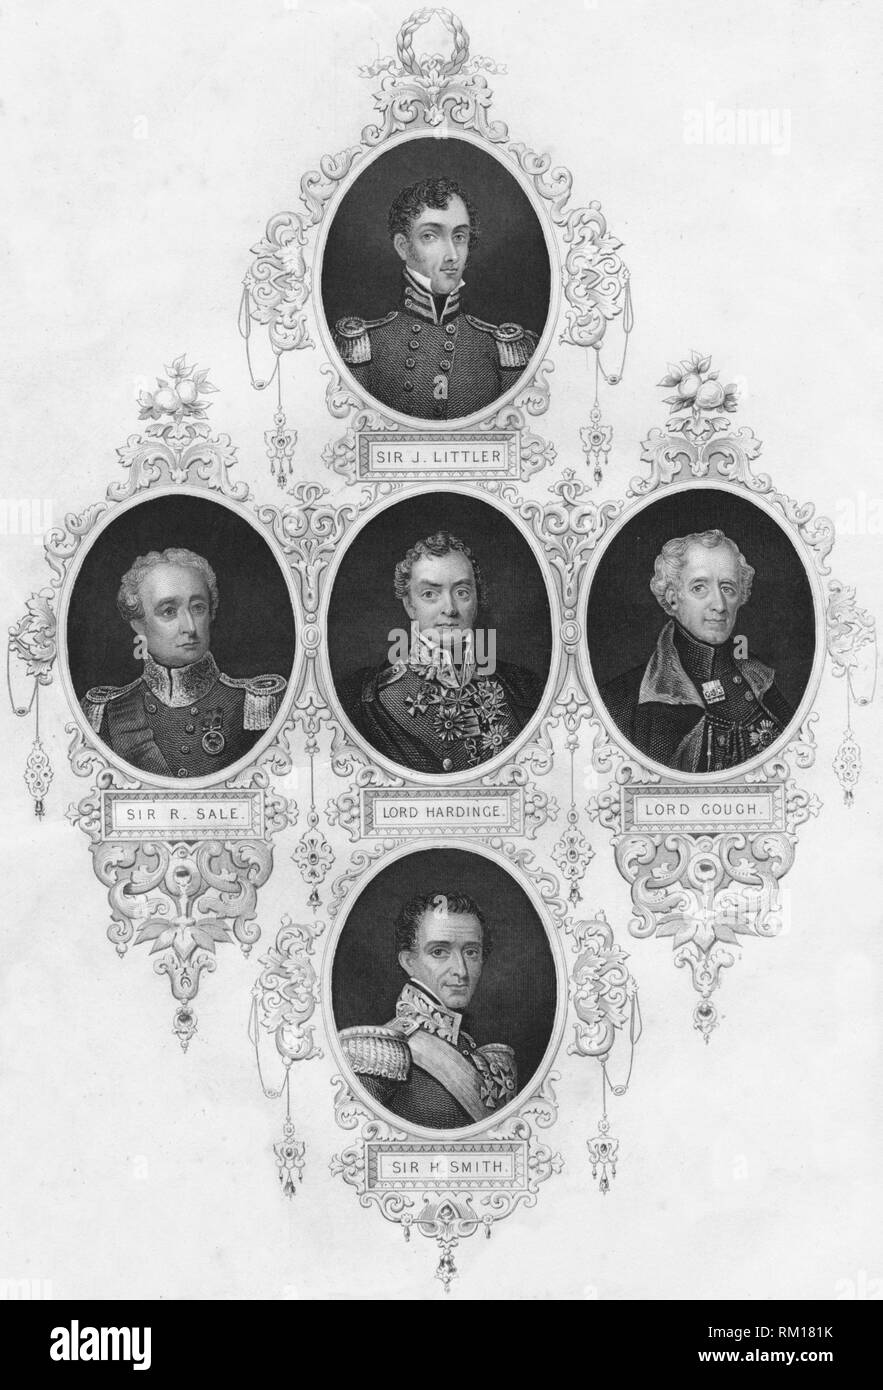 Medallion portraits of British military figures, (mid 19th century). Portraits of commanders who furthered the imperialist cause in India and other colonial possessions: General Sir John Littler (1783-1856), lieutenant-general in the British Indian army, who fought in the 1st Anglo-Sikh War (1845-1846); Sir Robert Henry Sale (1784-1845), British soldier who served mainly in India and Afghanistan and rose to the rank of Major-General in the army of the British East India Company; Henry Hardinge, 1st Viscount Hardinge (1785-1856), British field marshal and Governor-general of India; Hugh Gough,  - Stock Image